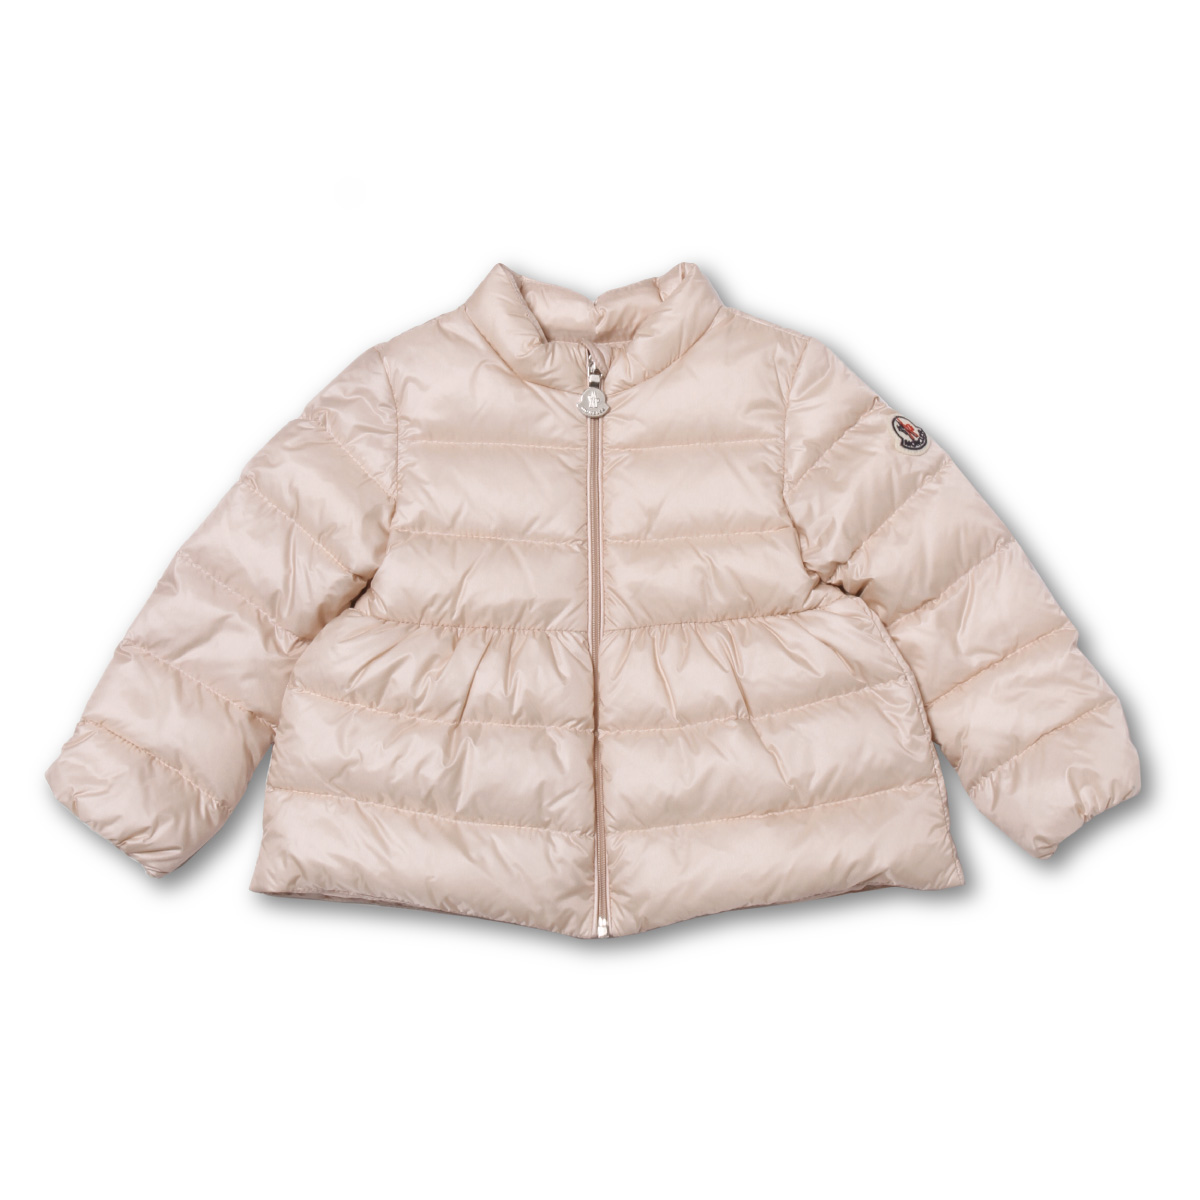 Monk rail MONCLER outer baby kids girls JOELLE 53048 529 down jacket JOELLE Joel PINK pink